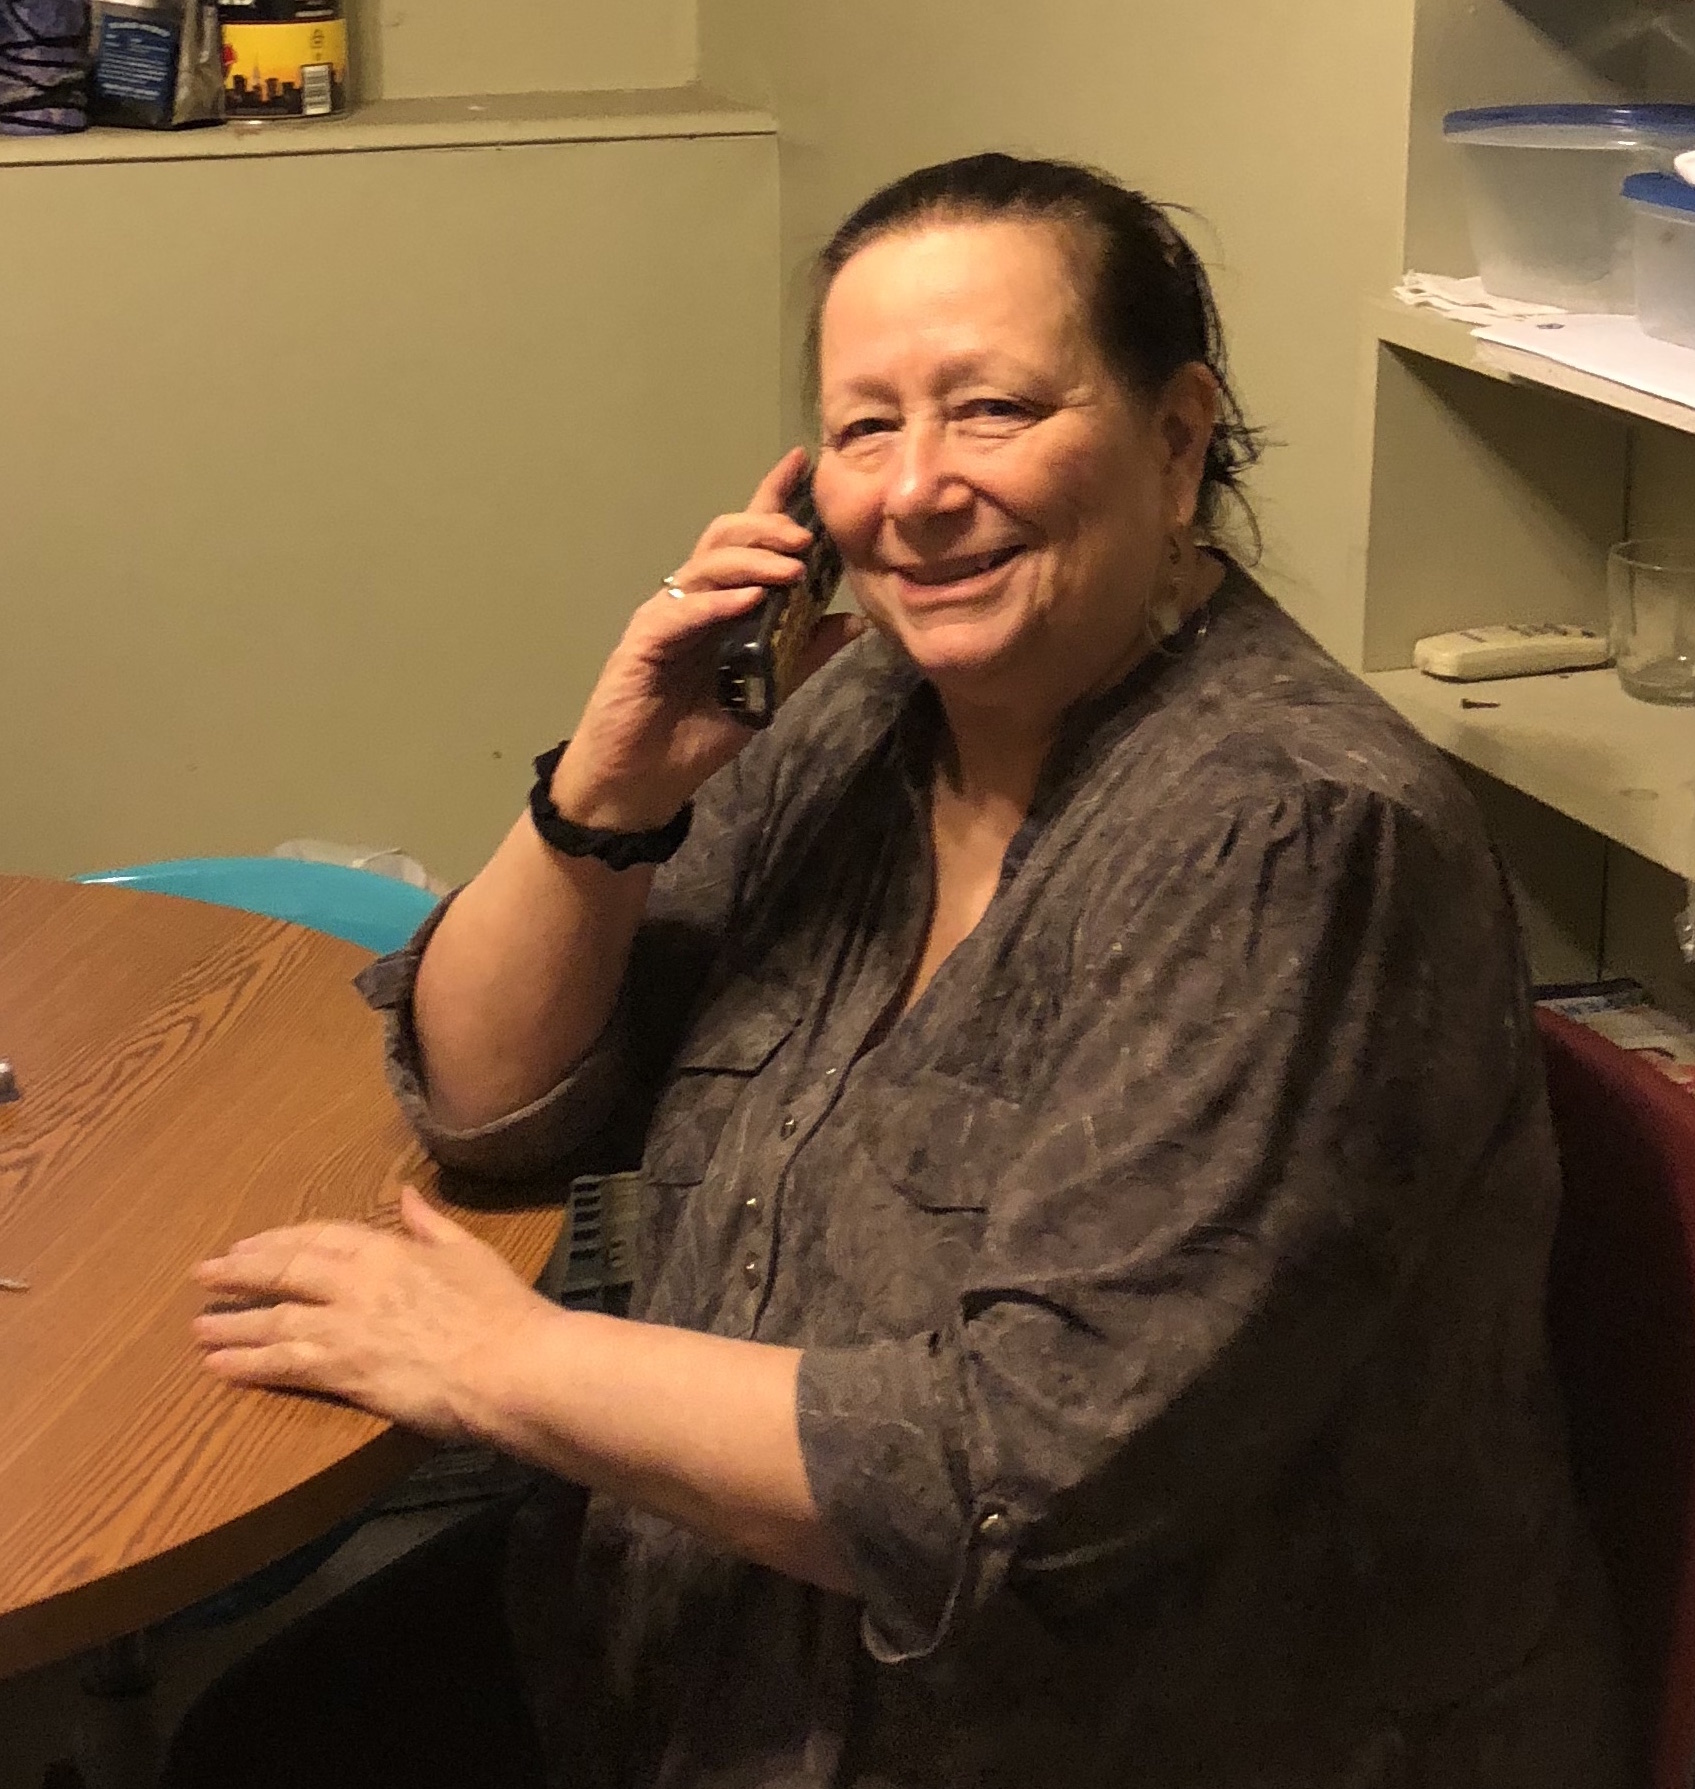 Sharon, Samaritan Program Director, takes calls from hundreds of people - like Jennifer - who are facing crisis. She provides our members with the knowledge, tools, and emotional support needed to rebuild their lives.